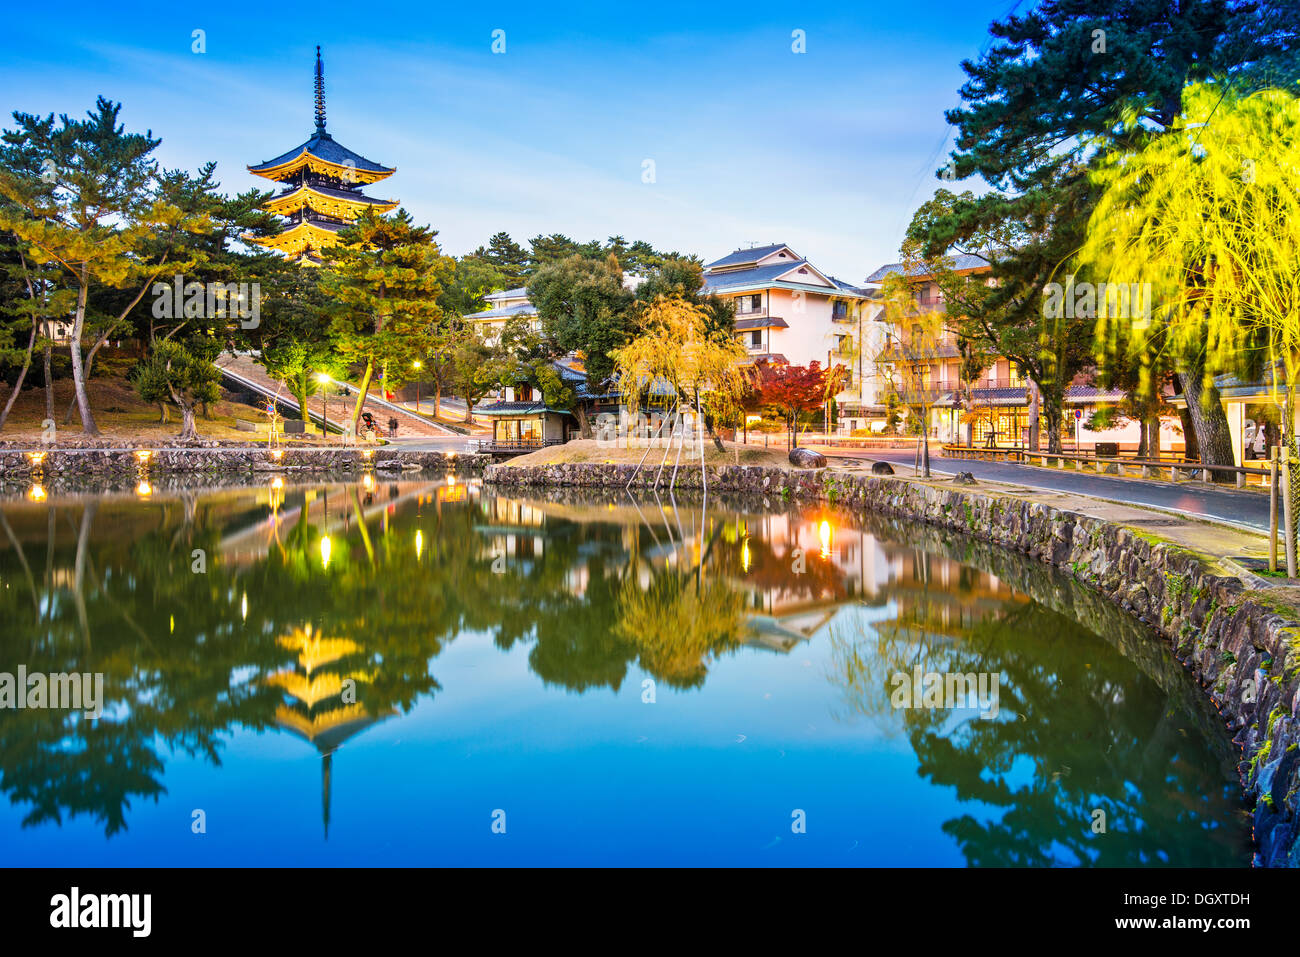 Nara, Japan at Sarusawa Pond. - Stock Image